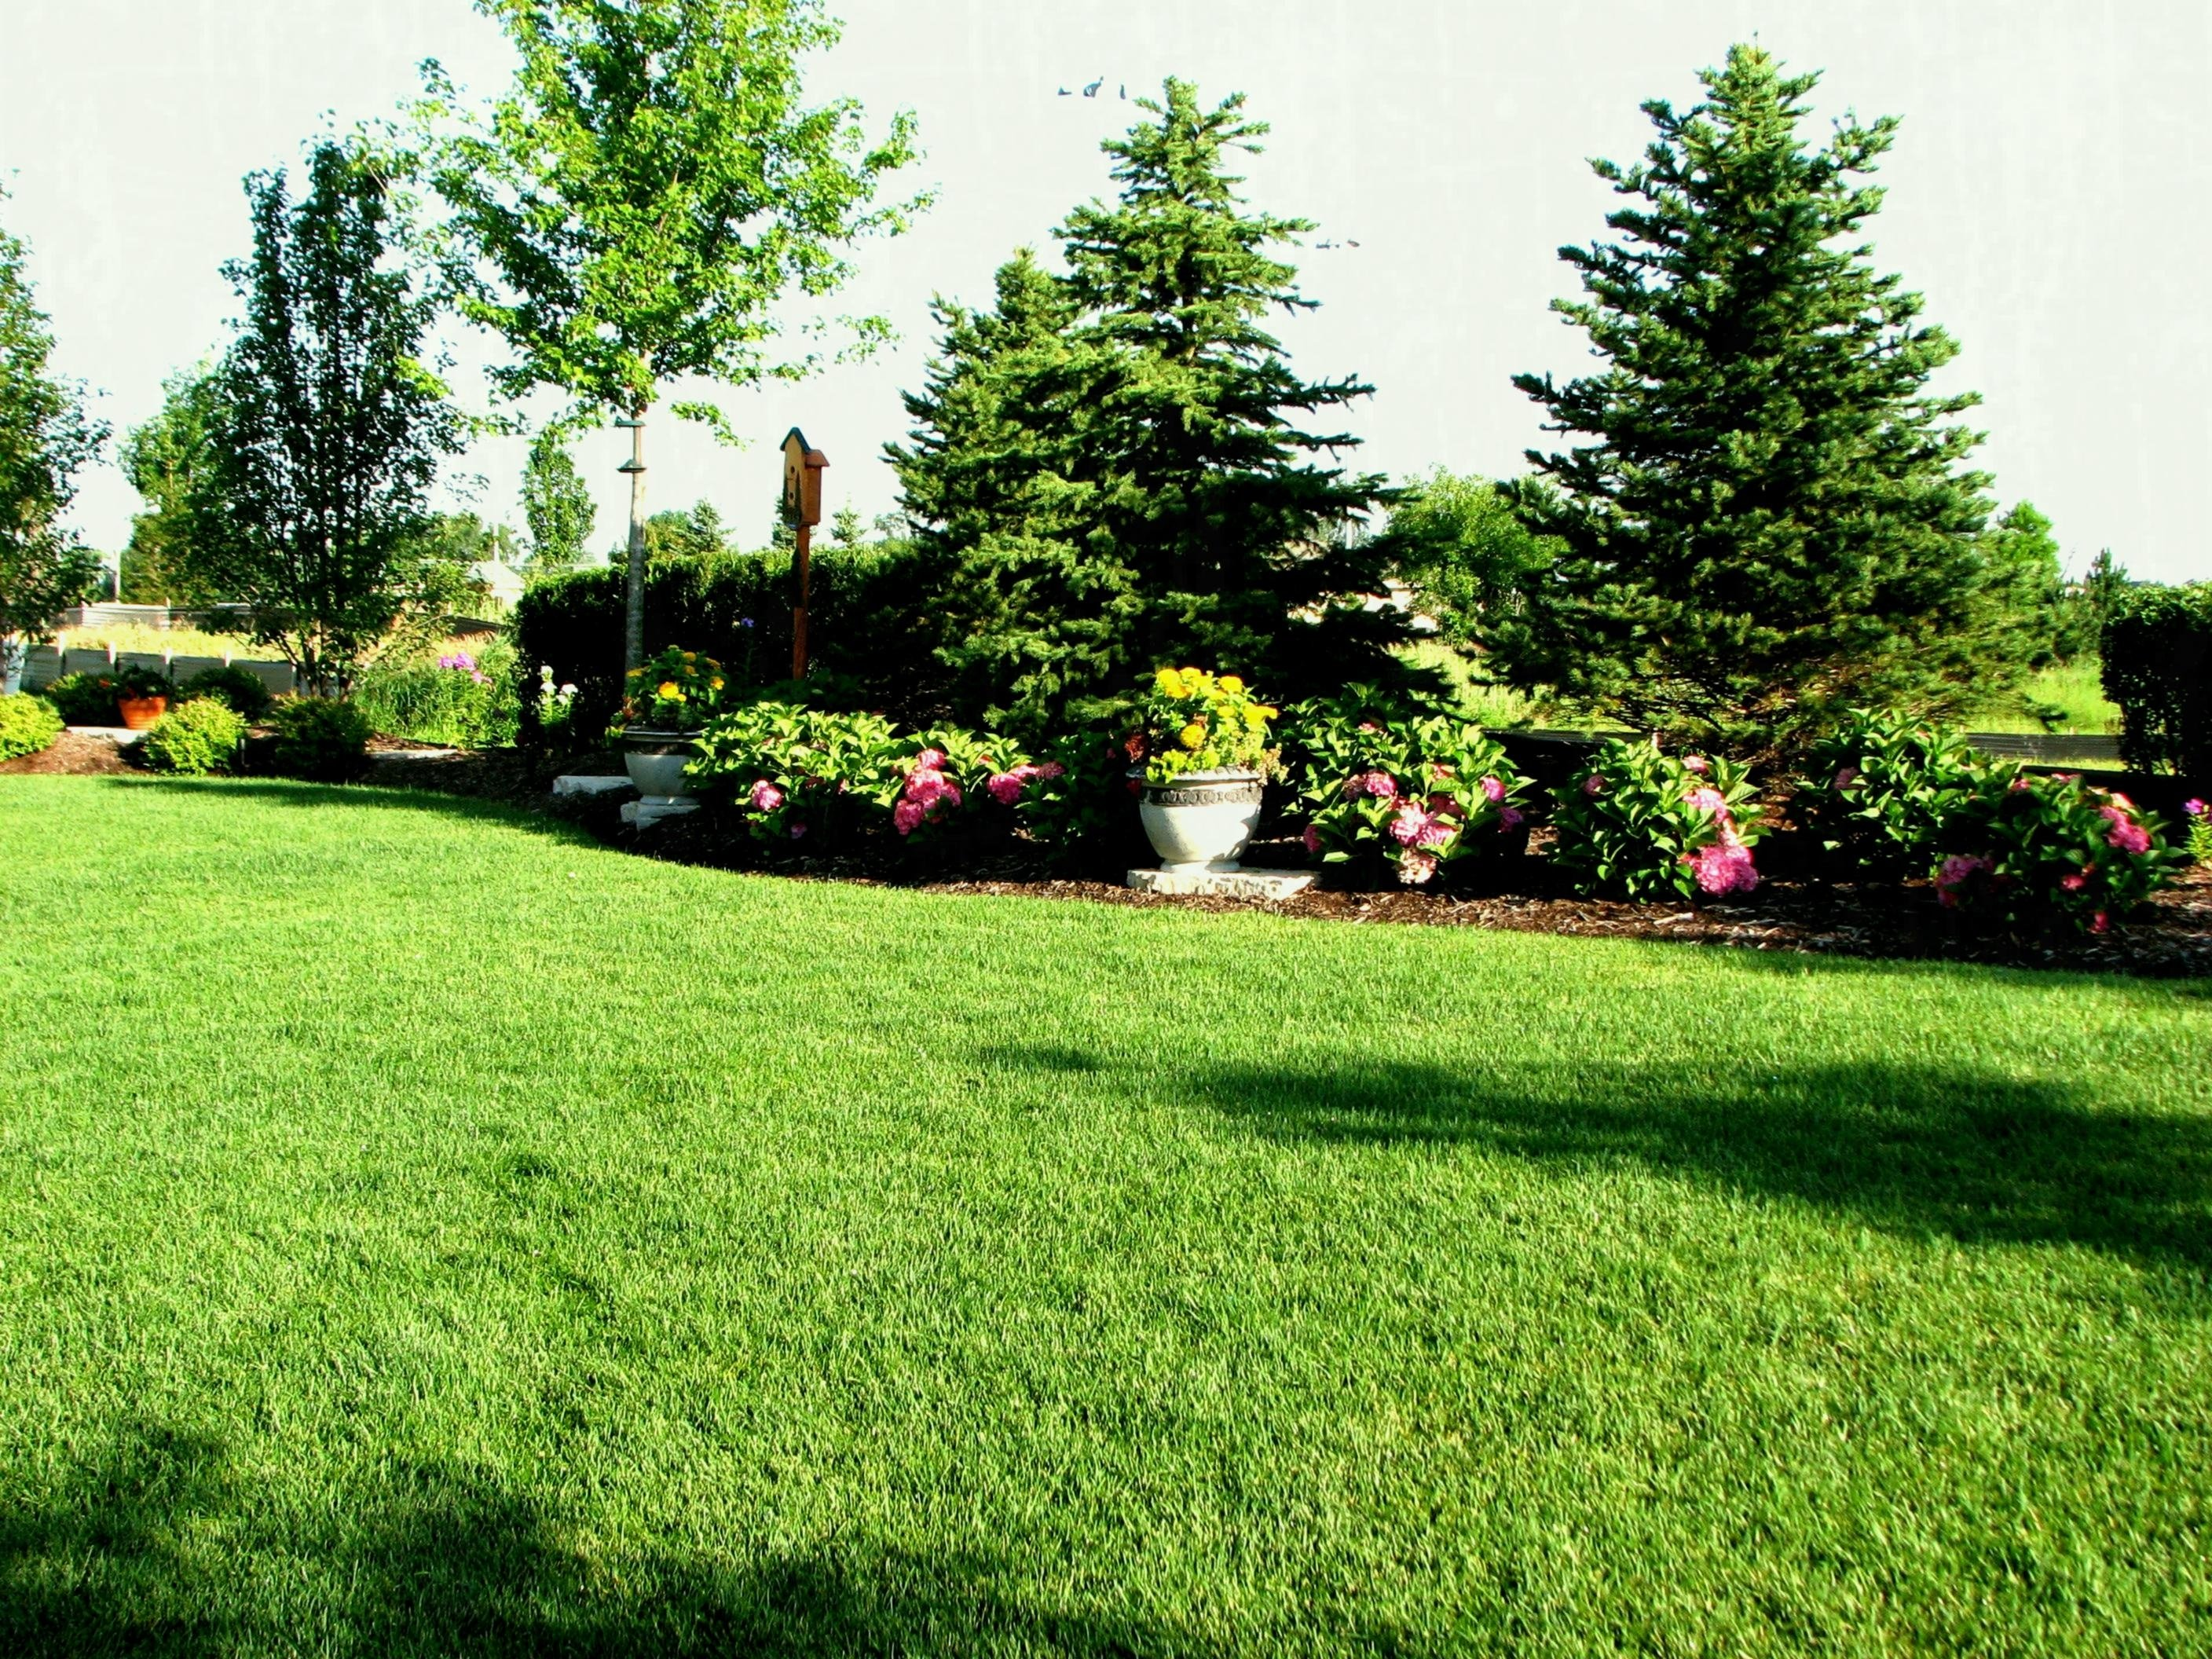 10 Most Recommended Backyard Landscaping Ideas For Privacy backyard landscaping for privacy existing home home garden ideas 2020